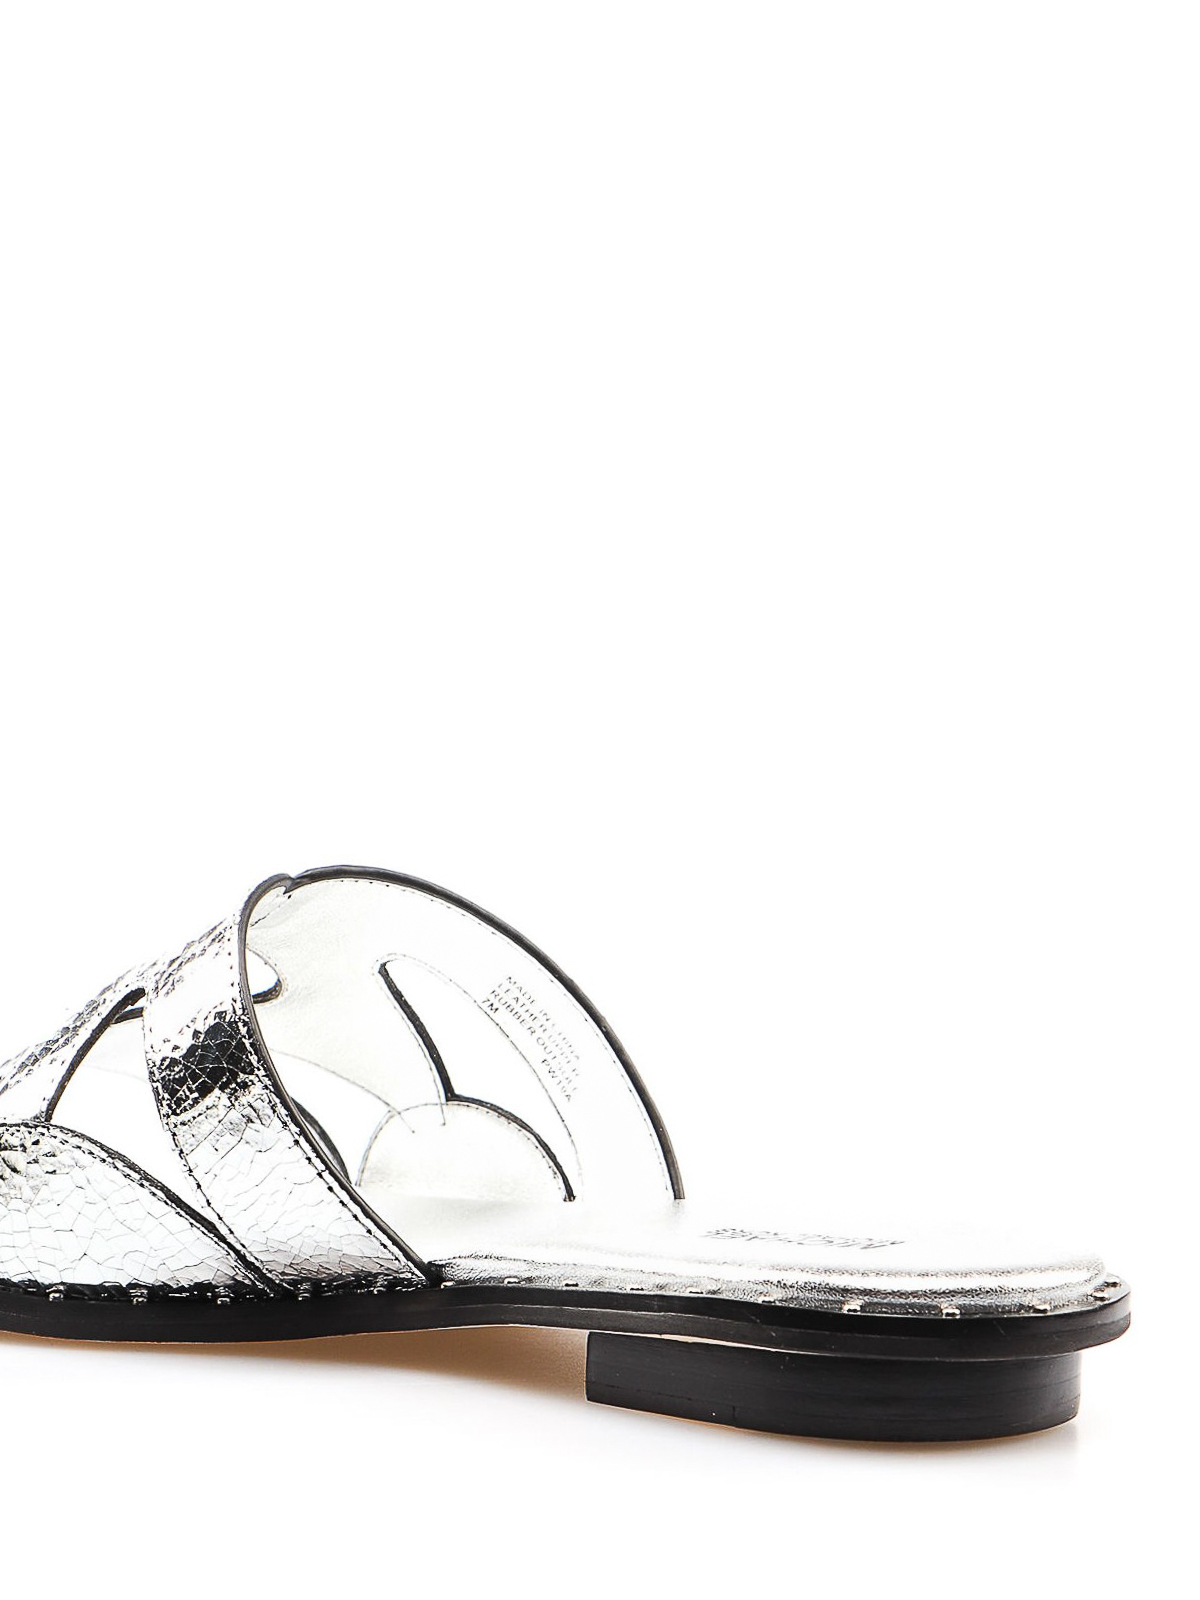 c06f15564ab Michael Kors - Annalee silver leather slide sandals - sandals ...